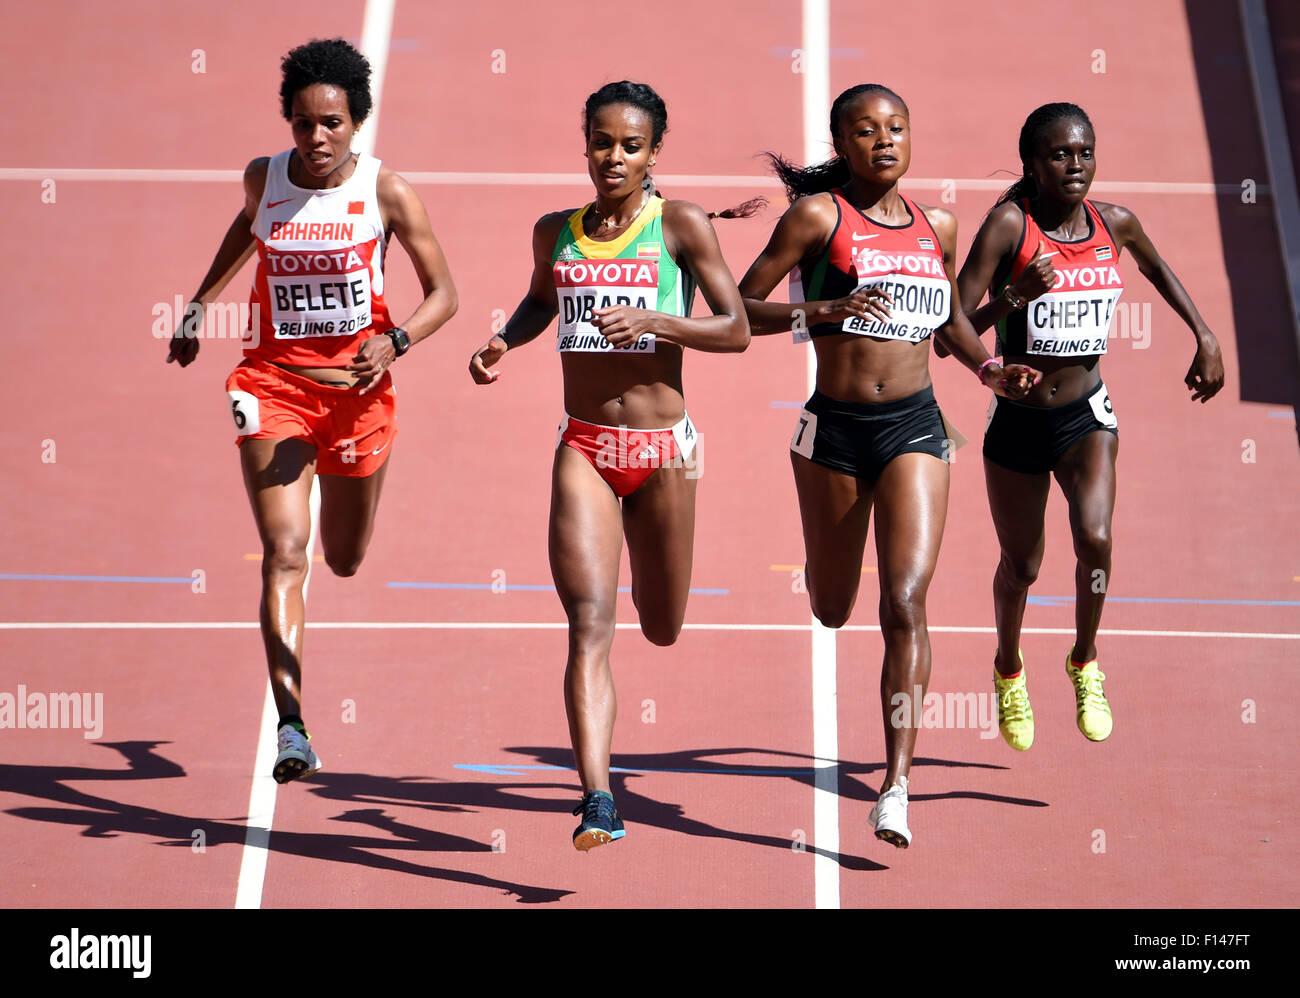 Beijing, China. 27th Aug, 2015. Genzebe Dibaba (2nd L) of Ethiopia competes during the women's 5000m heat at the Stock Photo